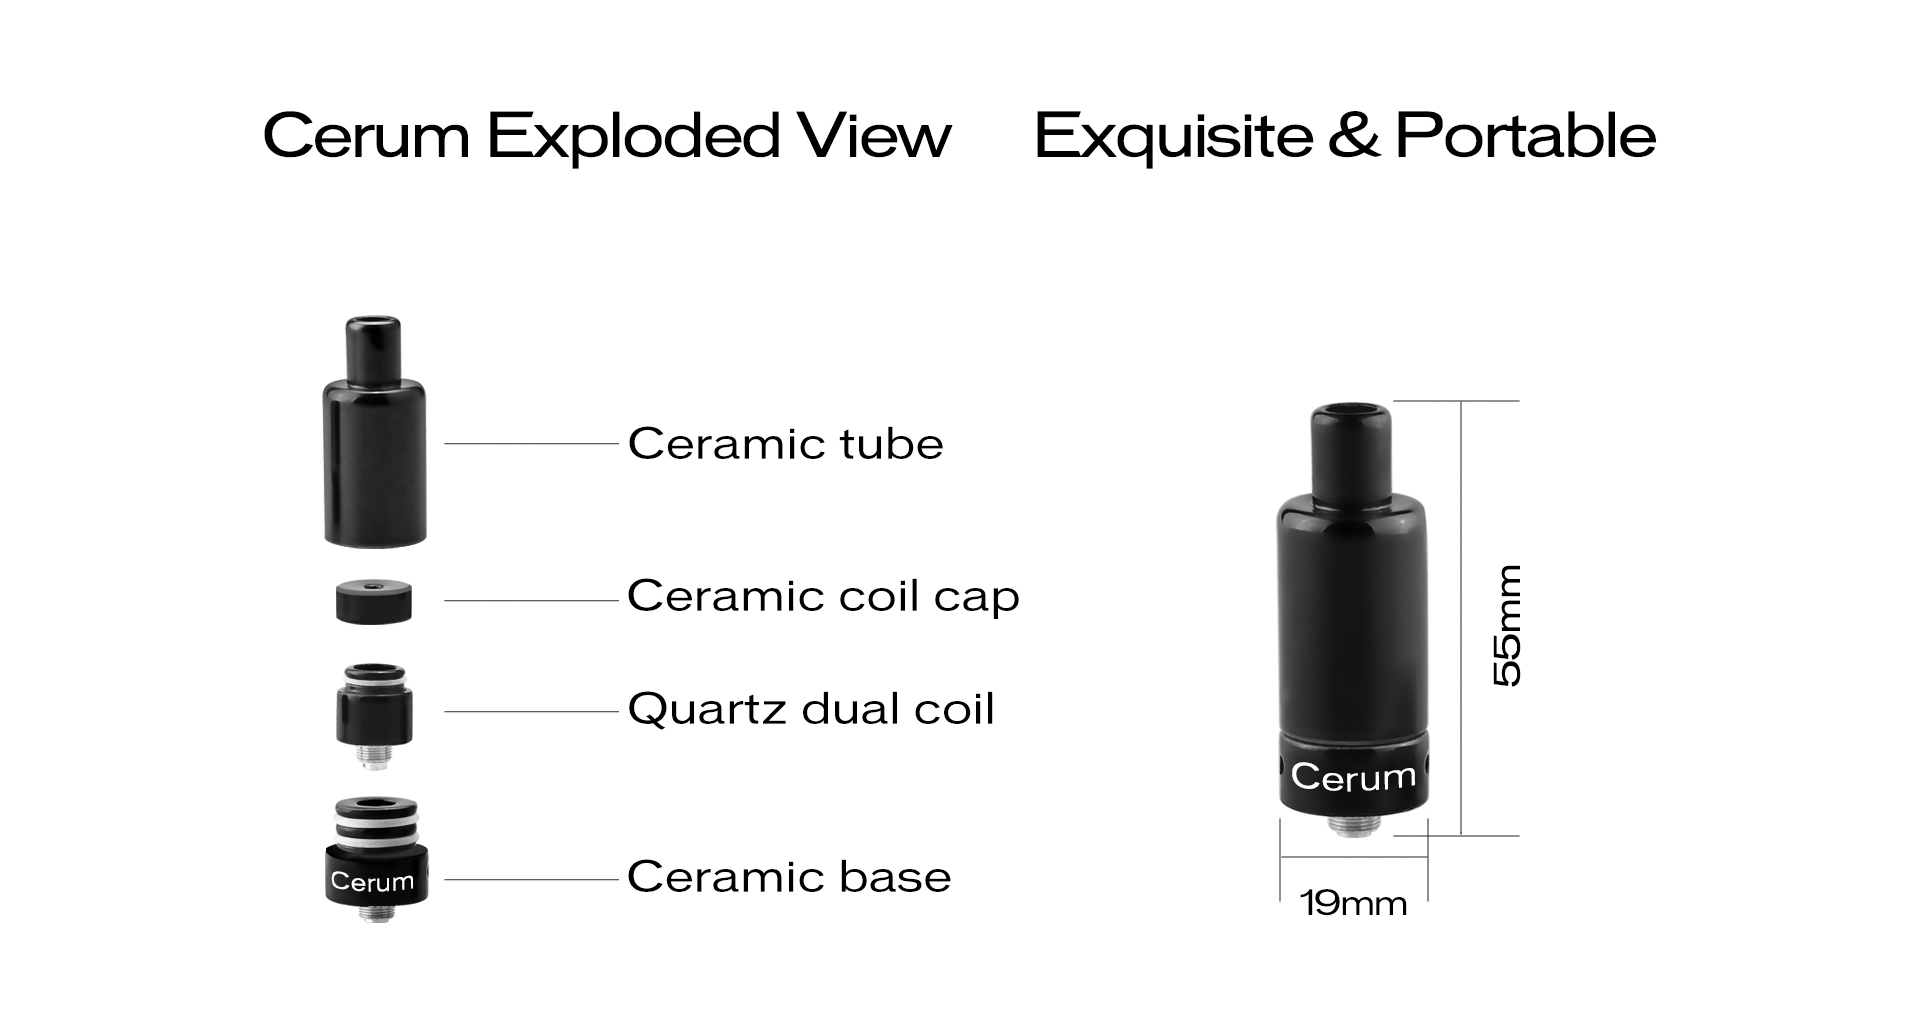 The Yocan Cerum Ceramic wax atomizer exploded view.